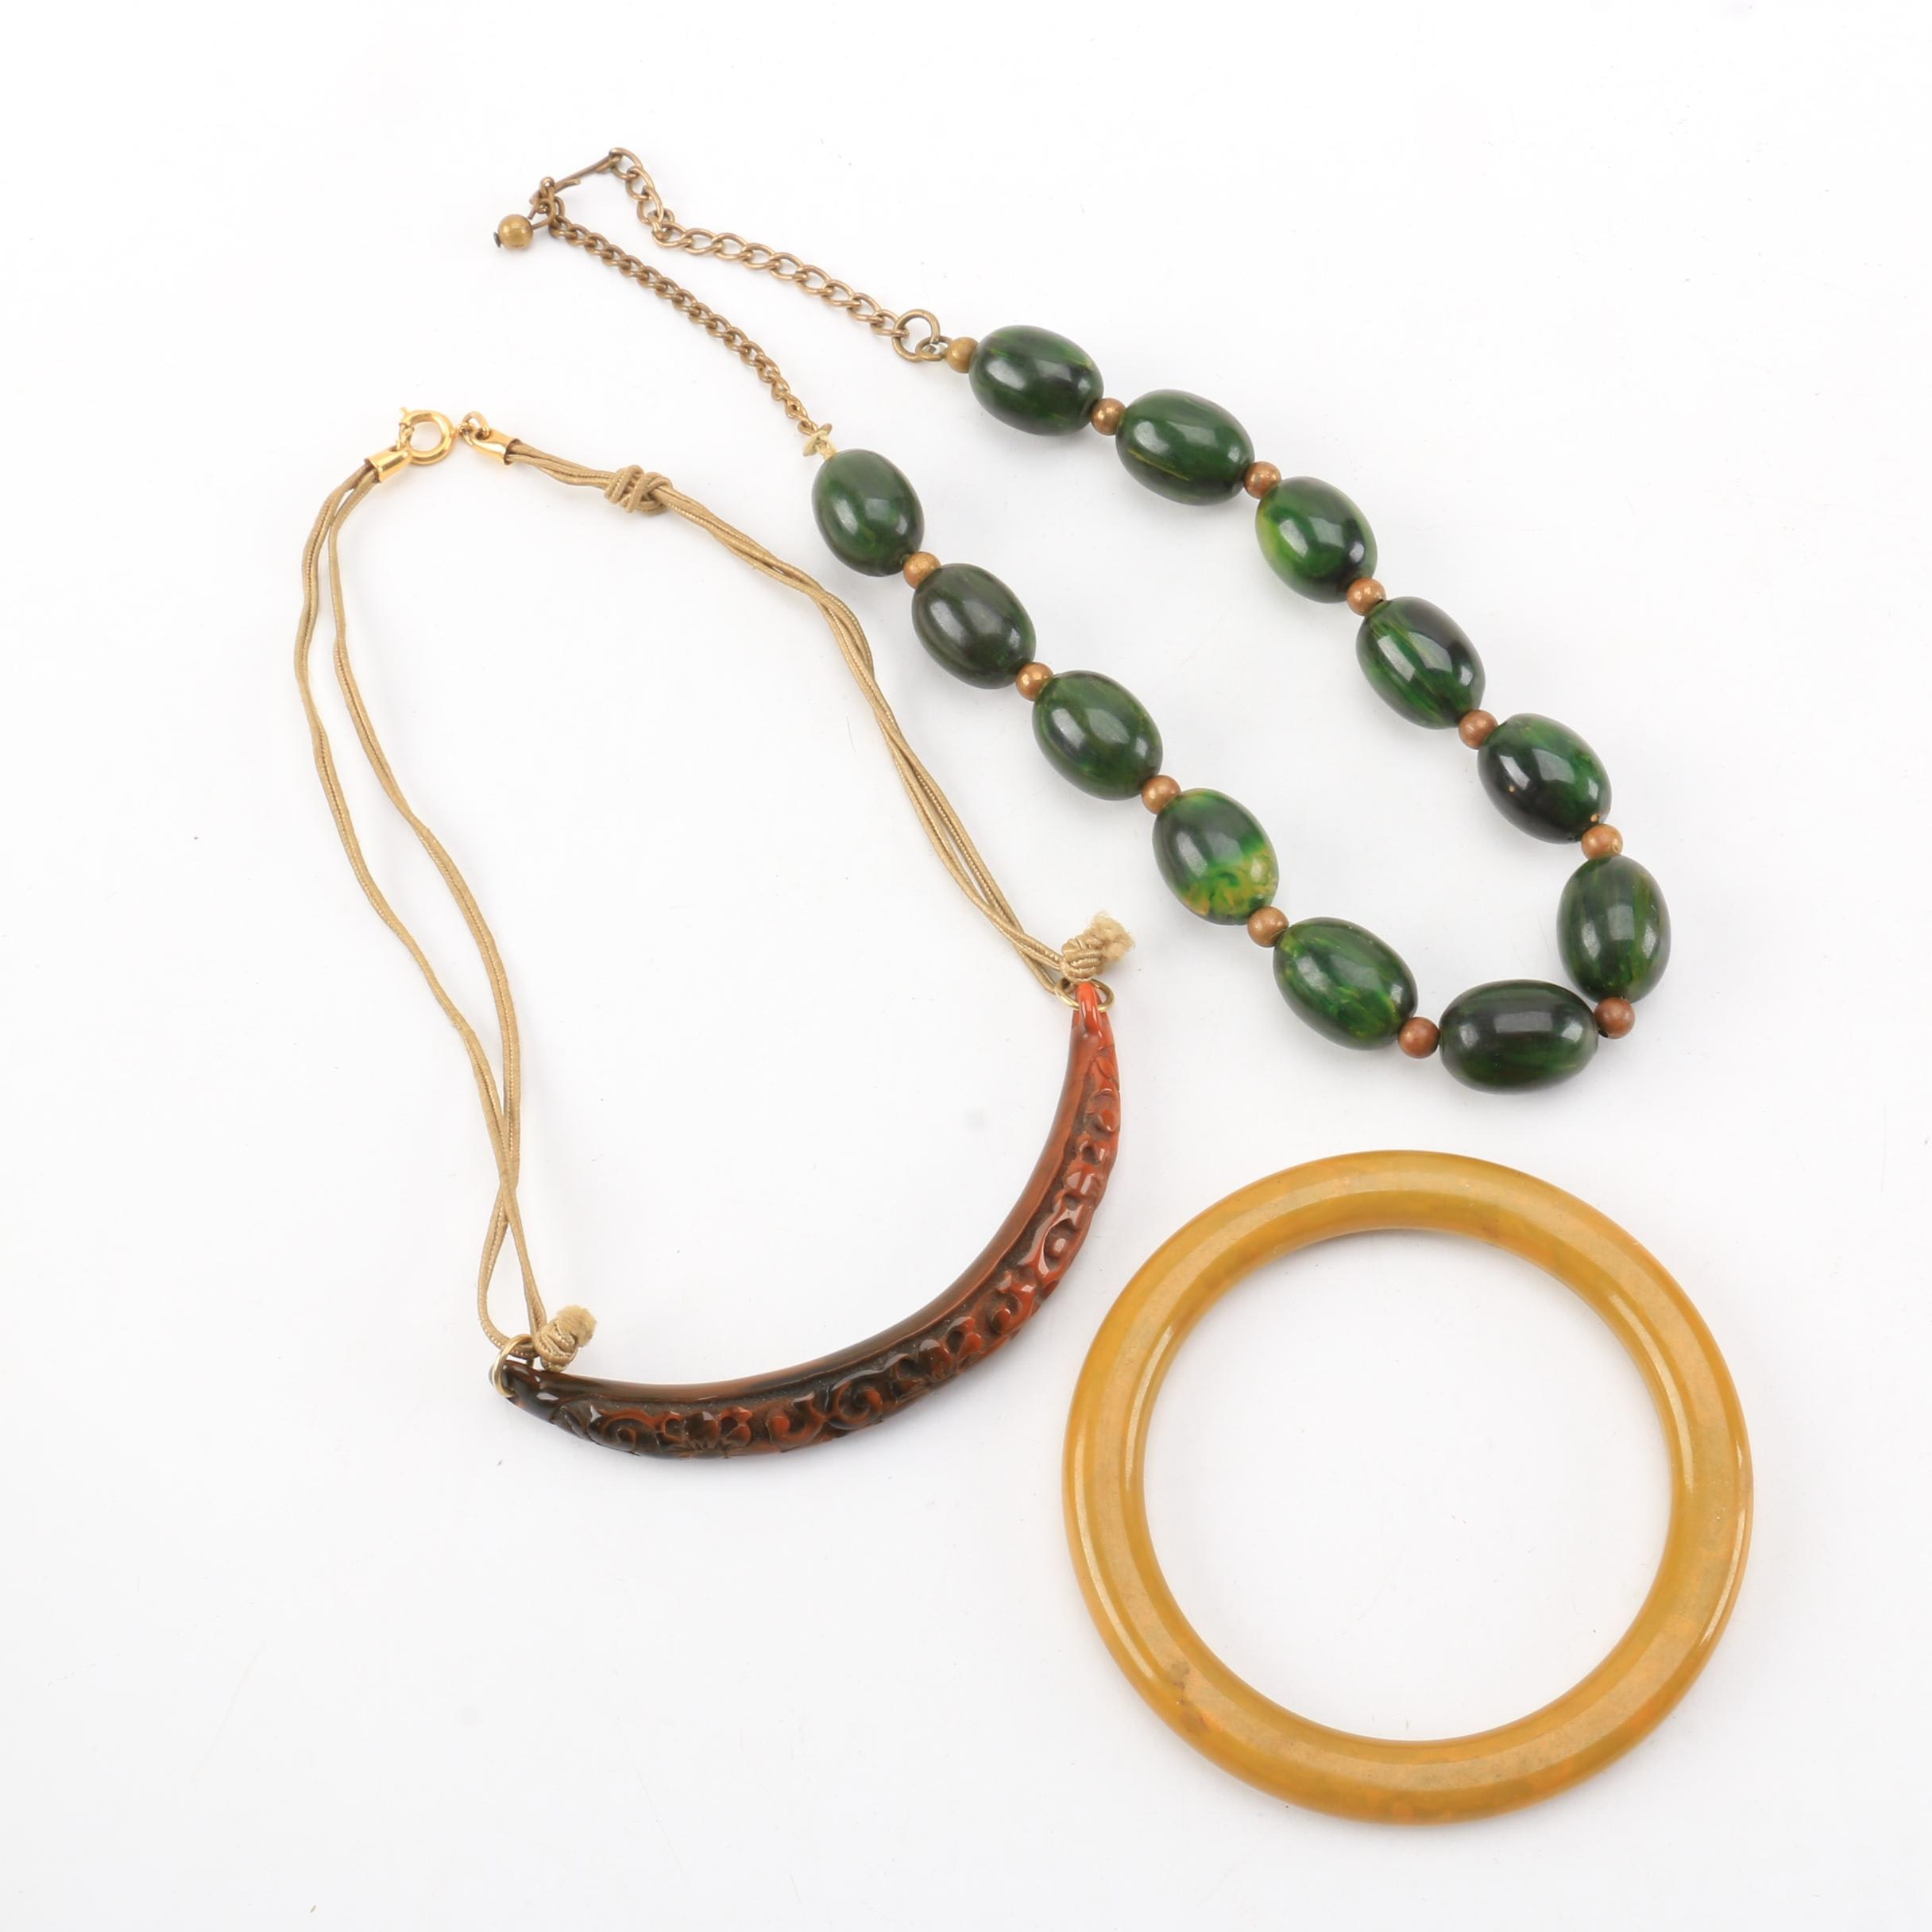 Costume Jewelry Including Marbled Bakelite